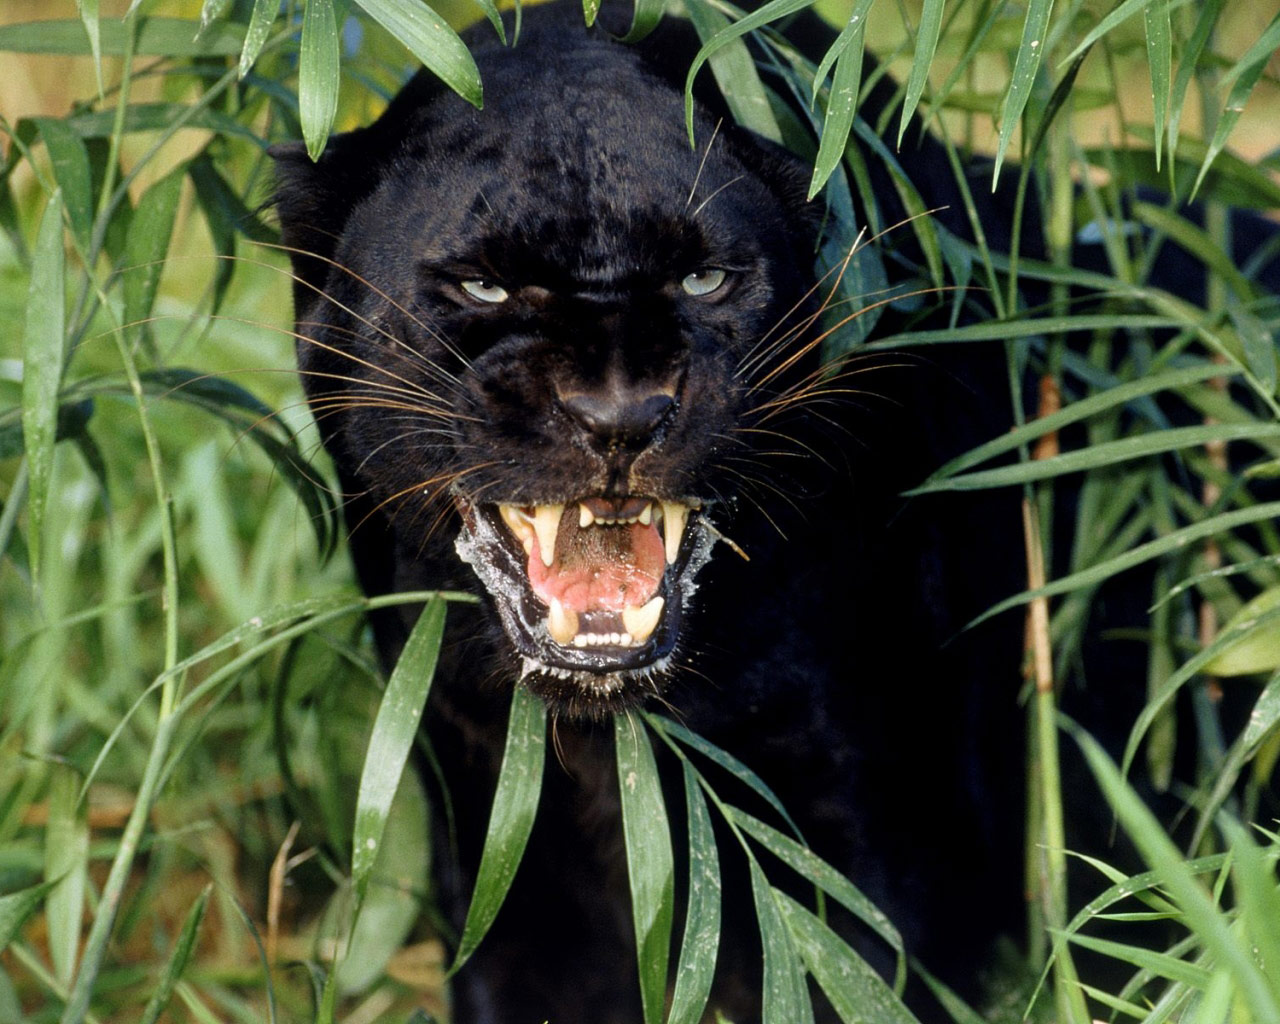 Desktop Wallpaper · Gallery · Animals Black Panther A melanistic jaguar